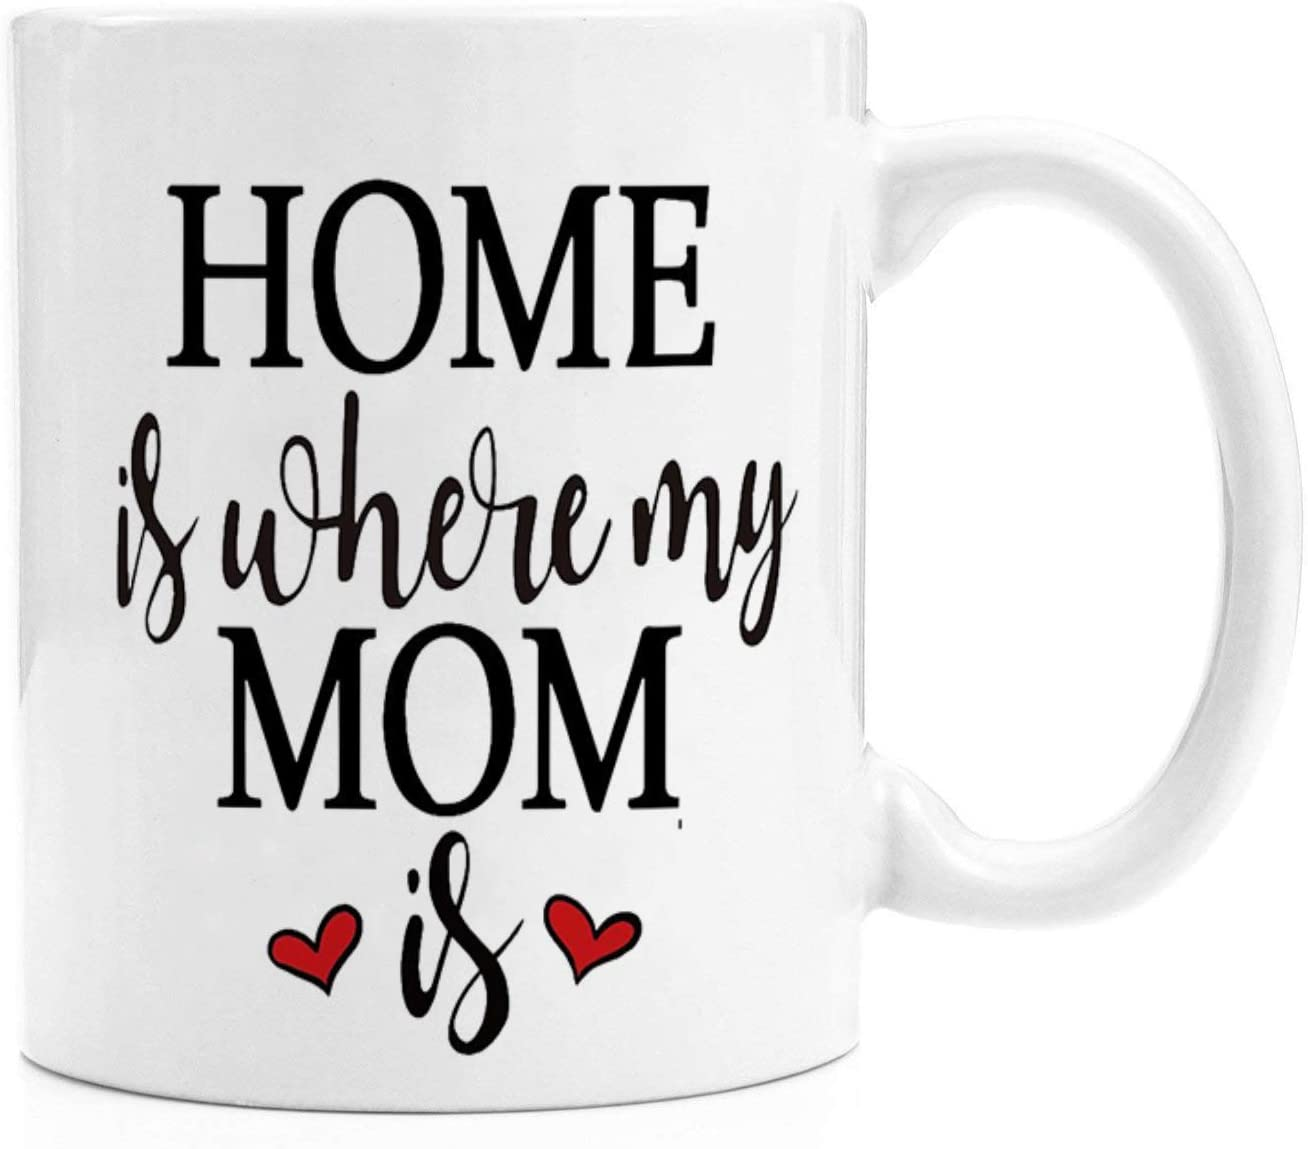 Funny Coffee Mug for Mom - Home is Where My Mom is - Mother's Day Gifts from Daughter Son, 11 oz